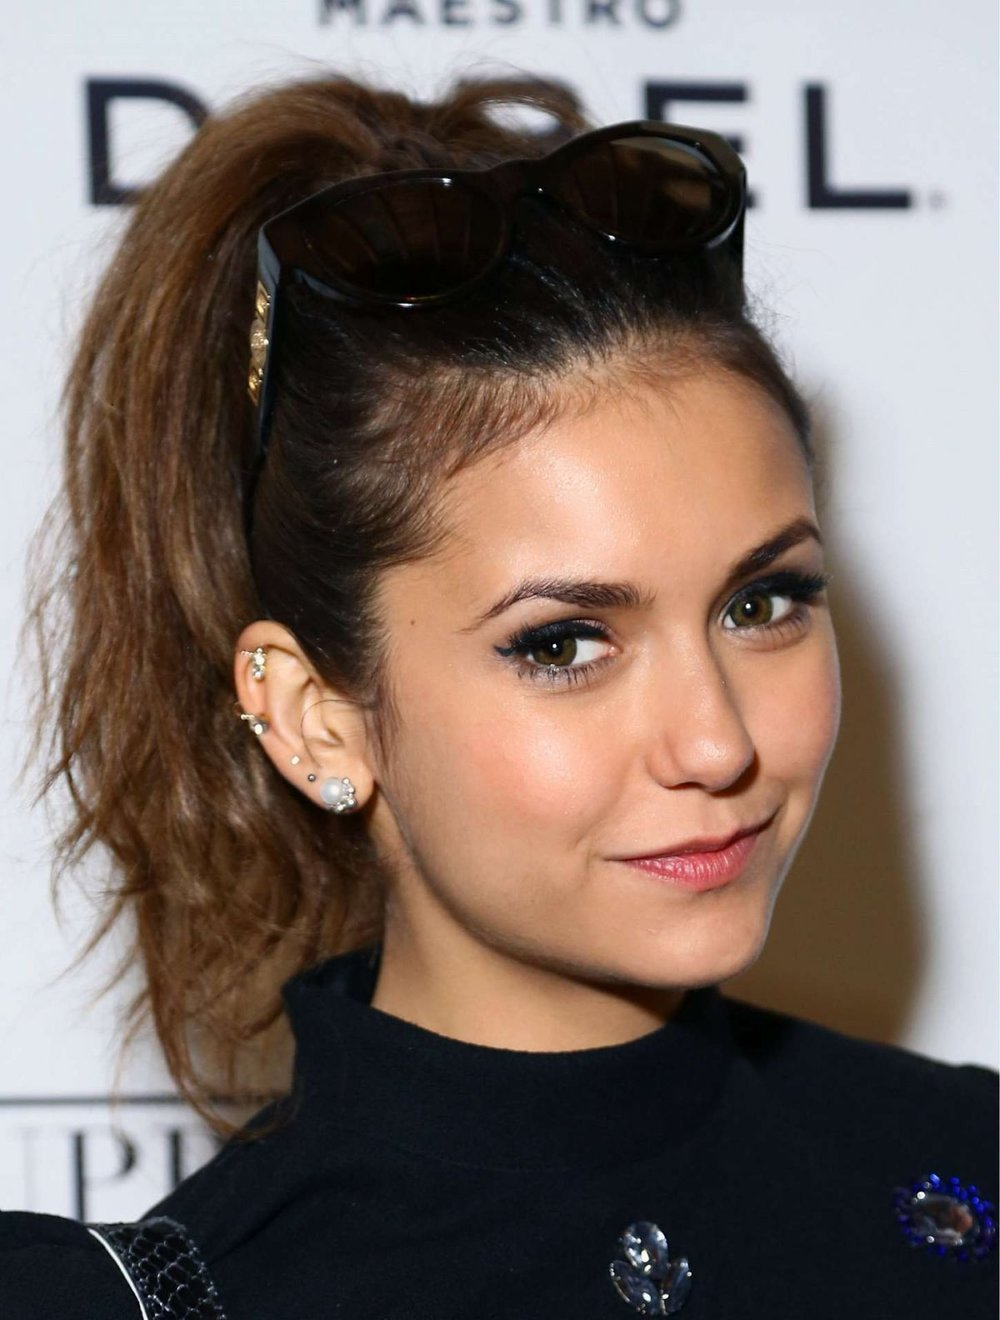 nina-dobrev-at-the-final-girls-press-conference-at-sxsw-in-austin_2.jpg